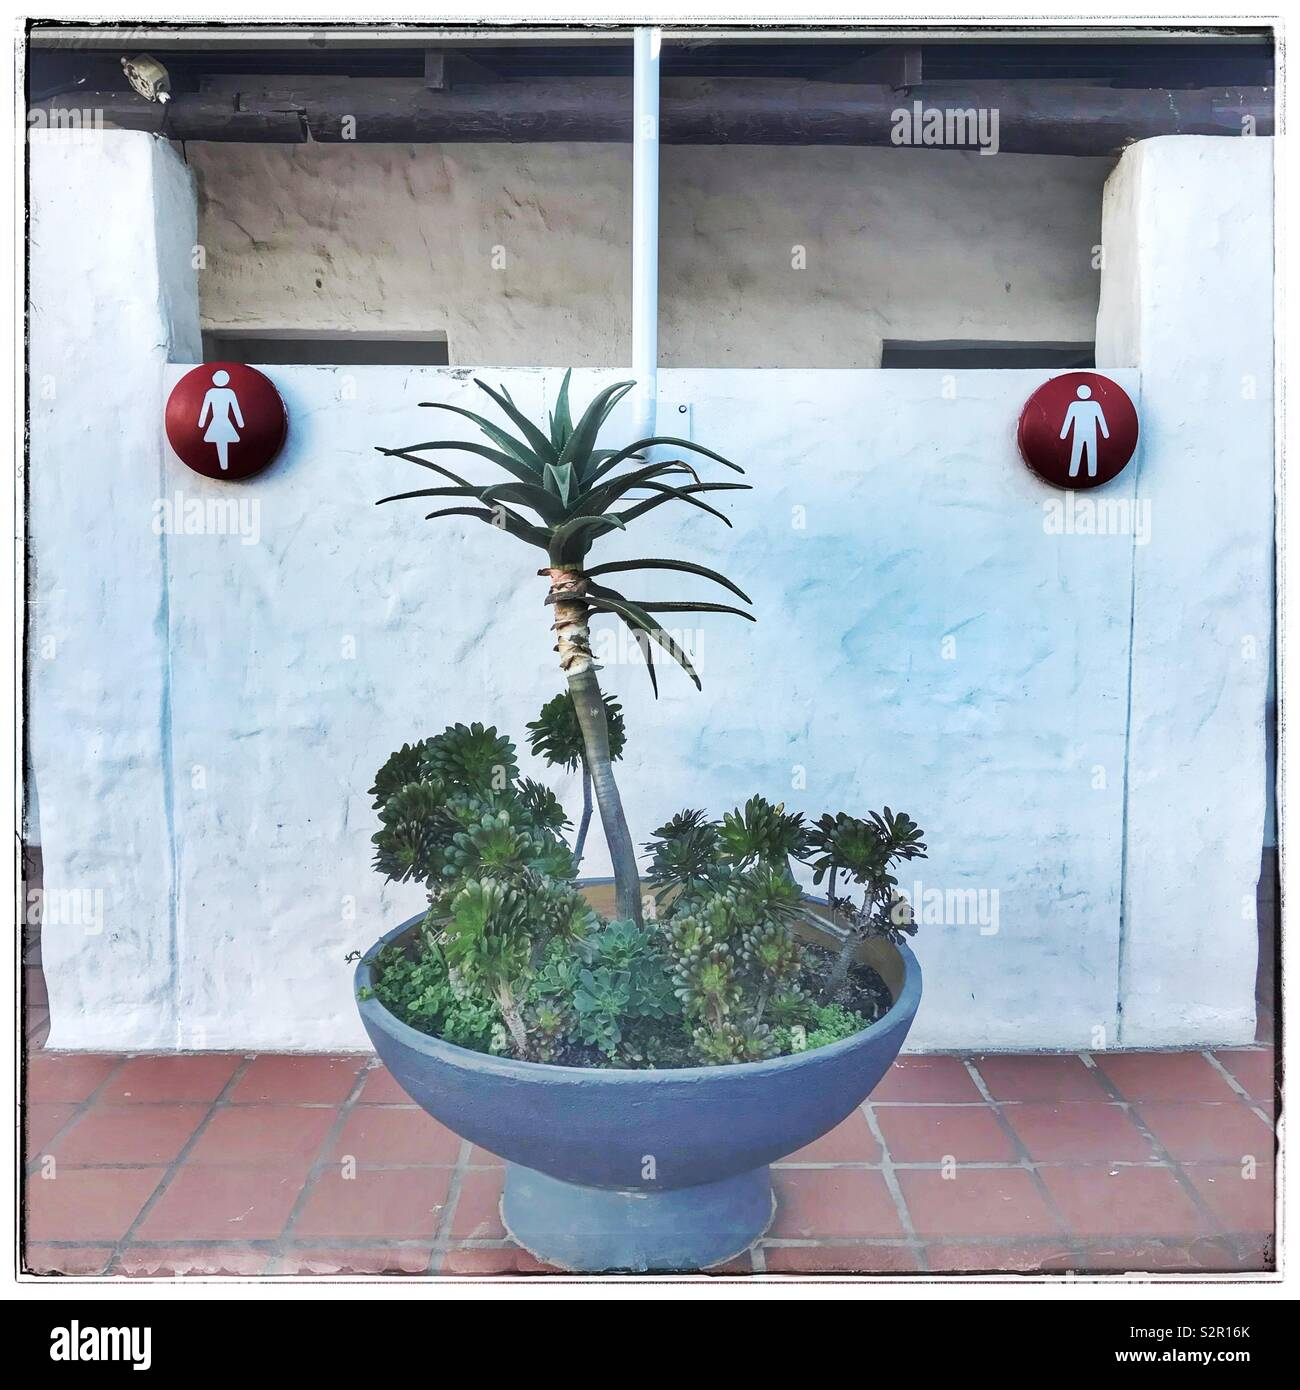 Pot with succulents at restrooms. - Stock Image